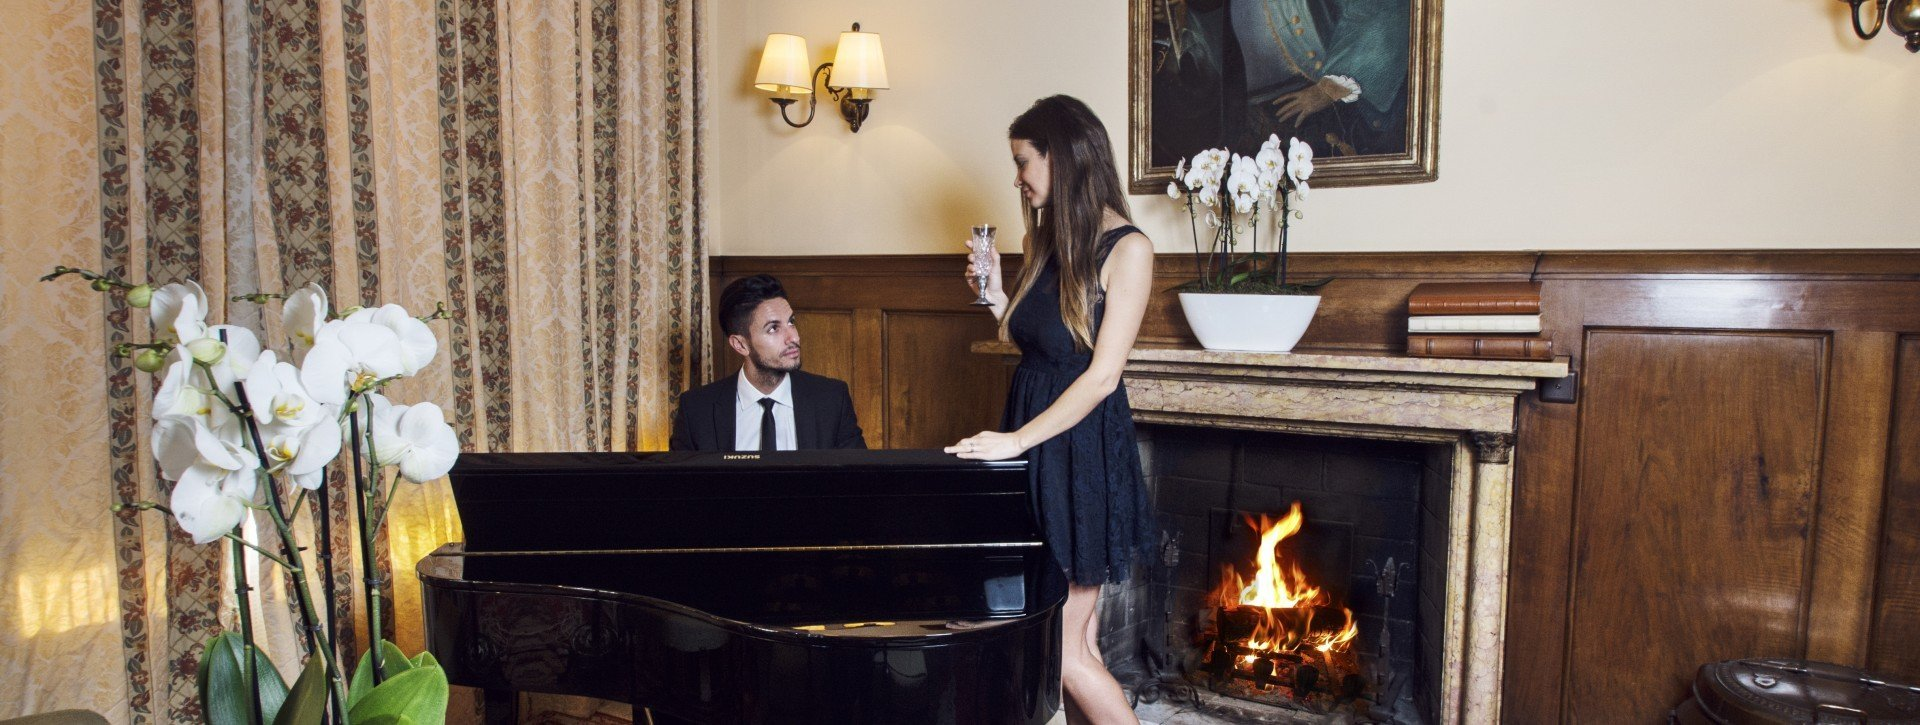 A man plays piano in the lobby bar and the woman stands beside him